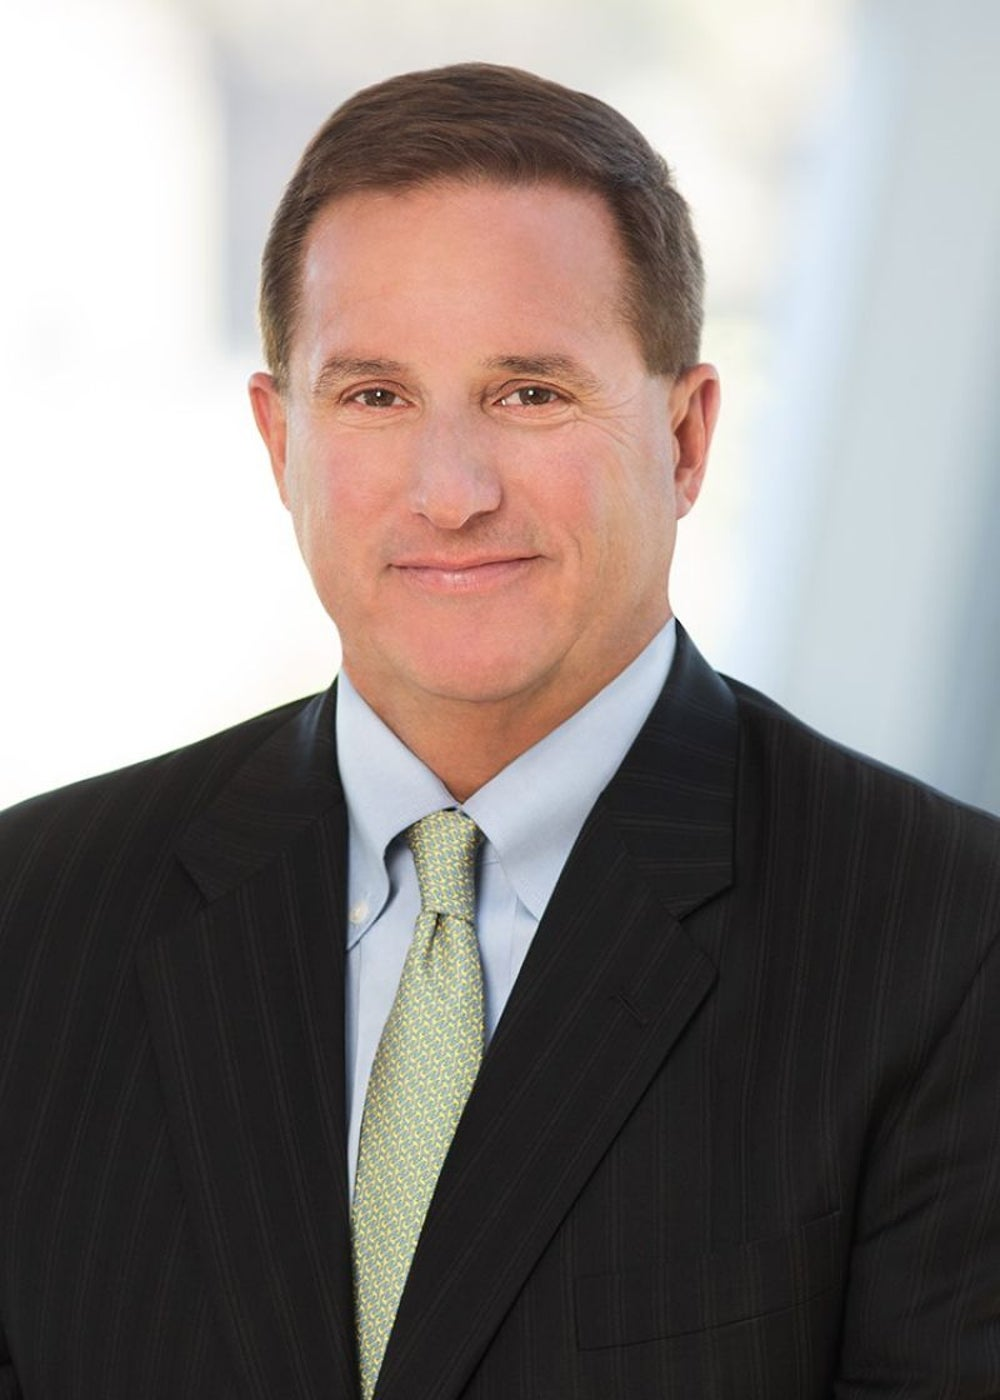 Mark Hurd, co-CEO of Oracle -- $41.1 million